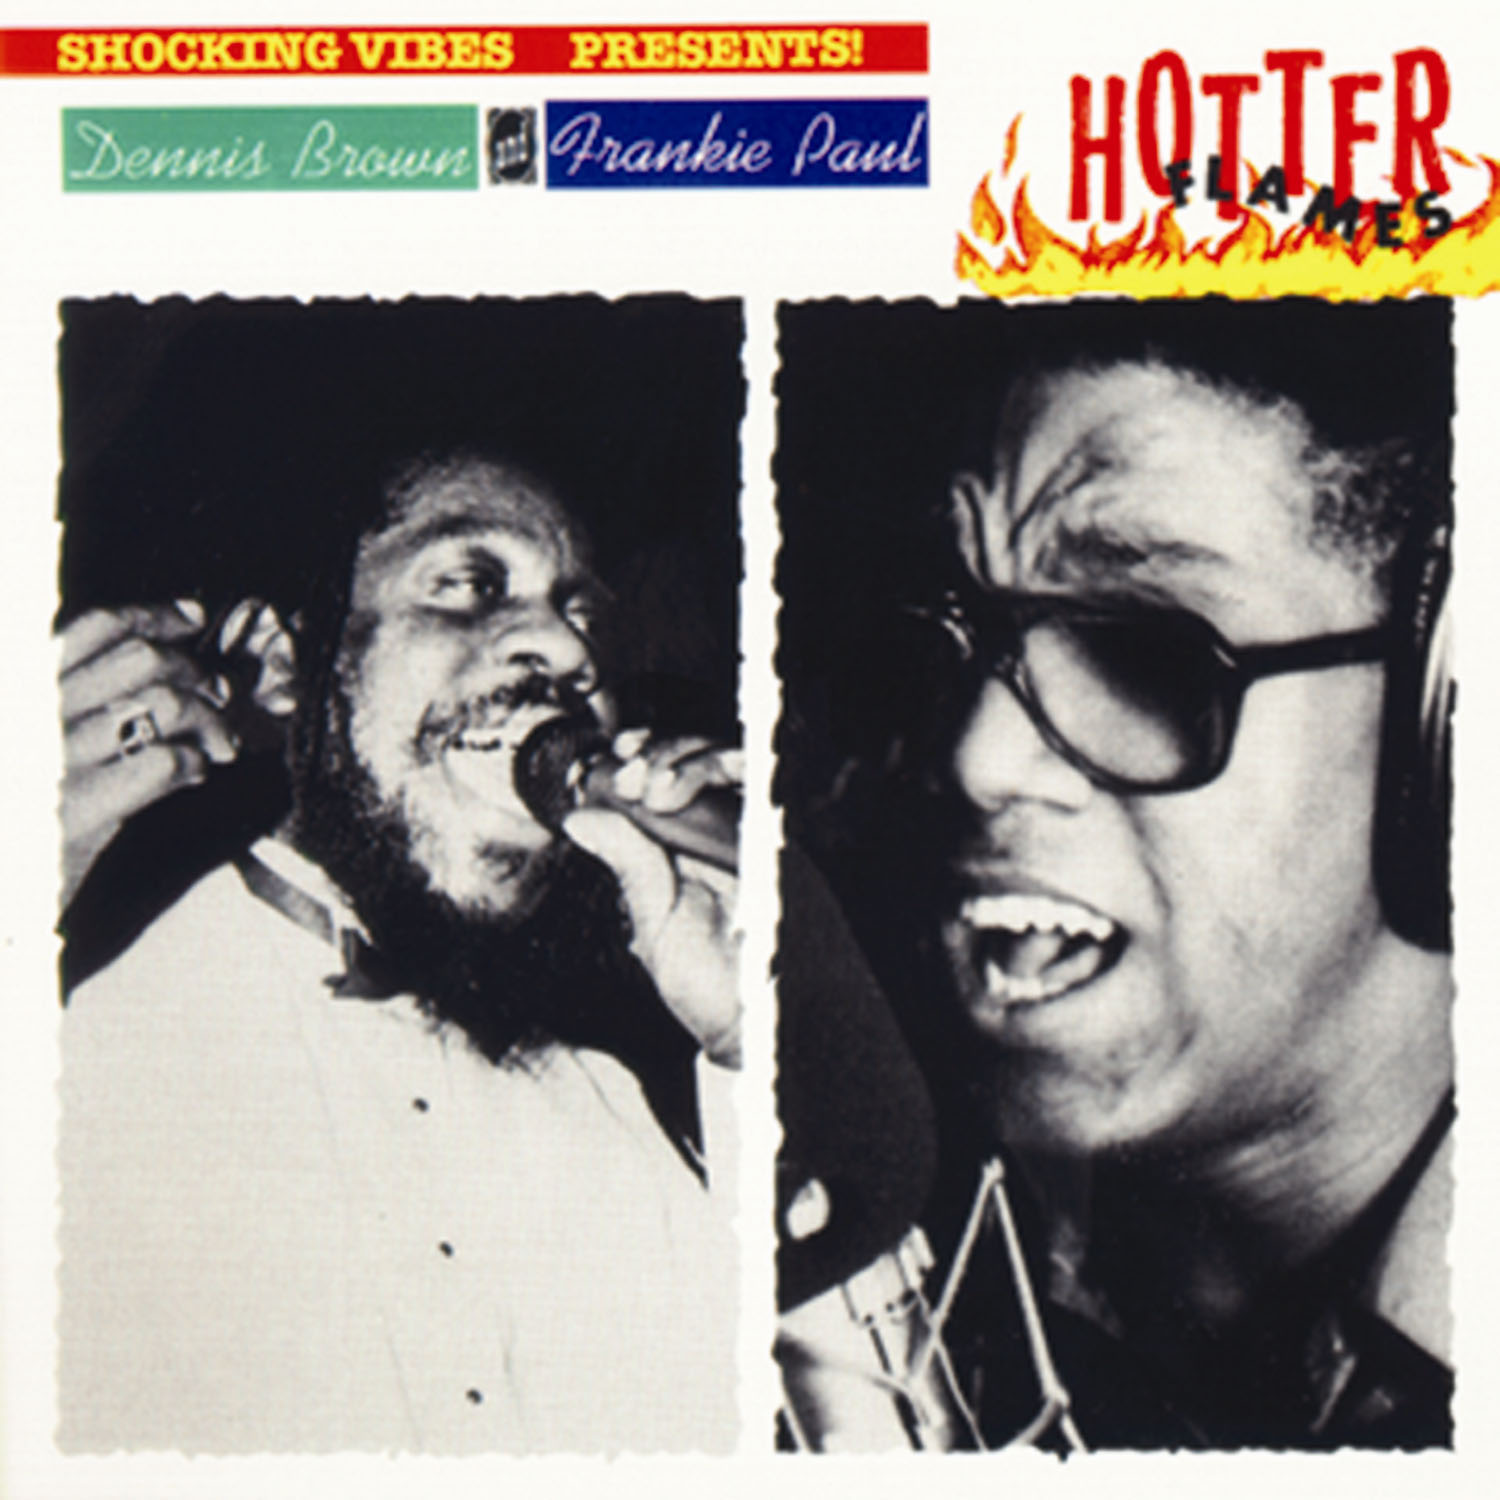 Dennis Brown and Frankie Paul – Hotter Flames